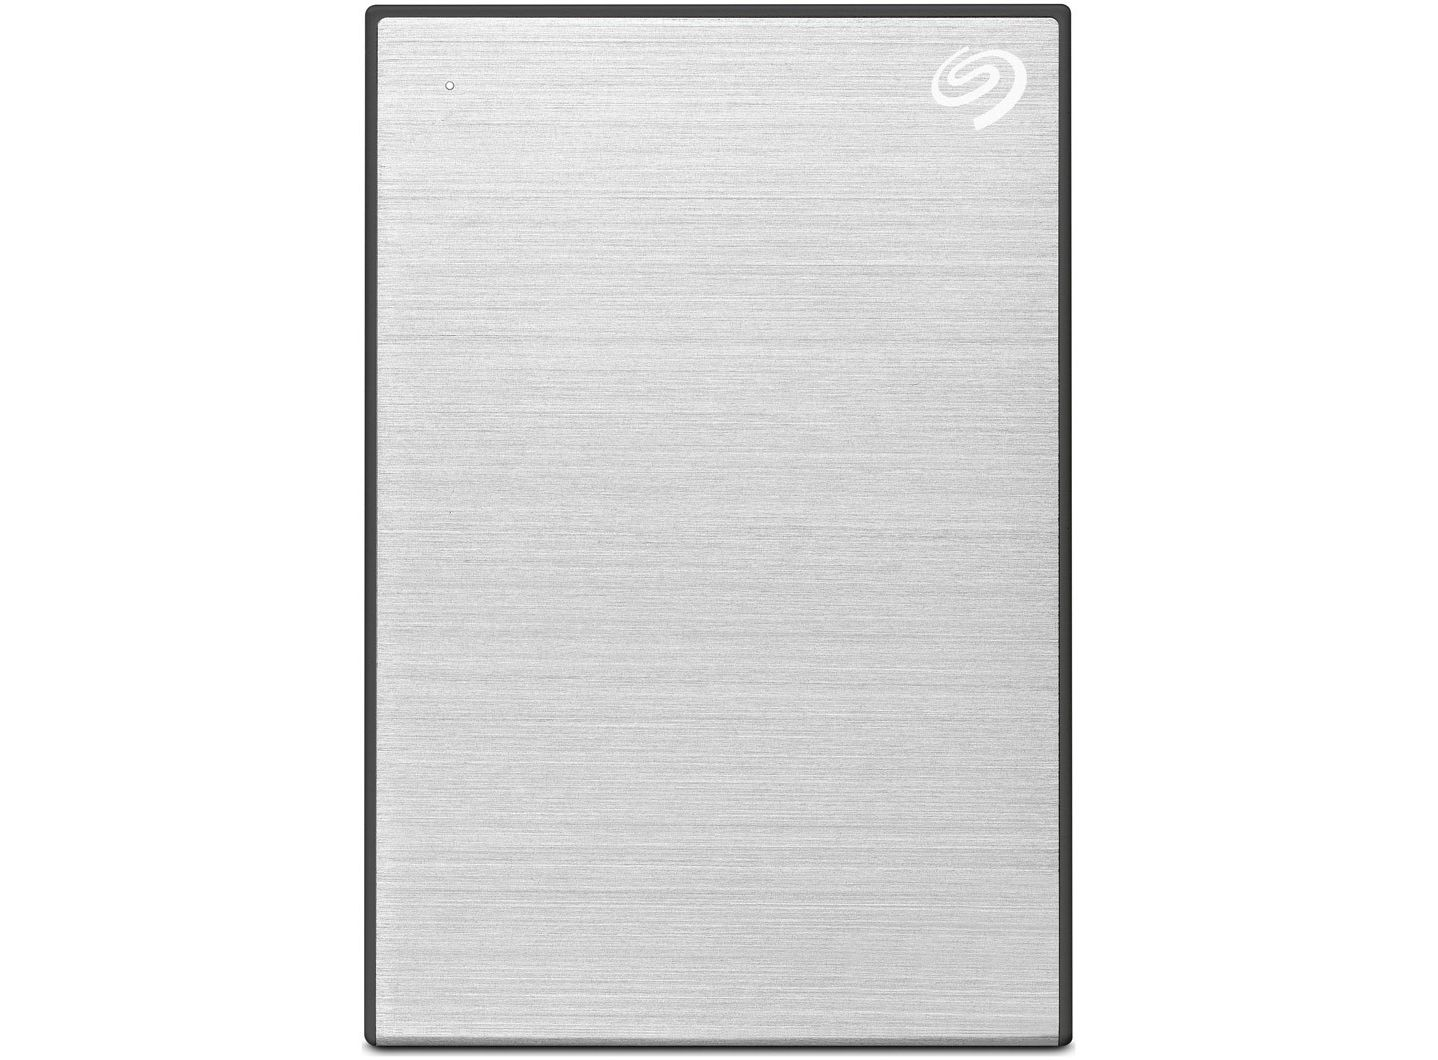 HD Seagate One Touch 4TB  - Rei dos HDs